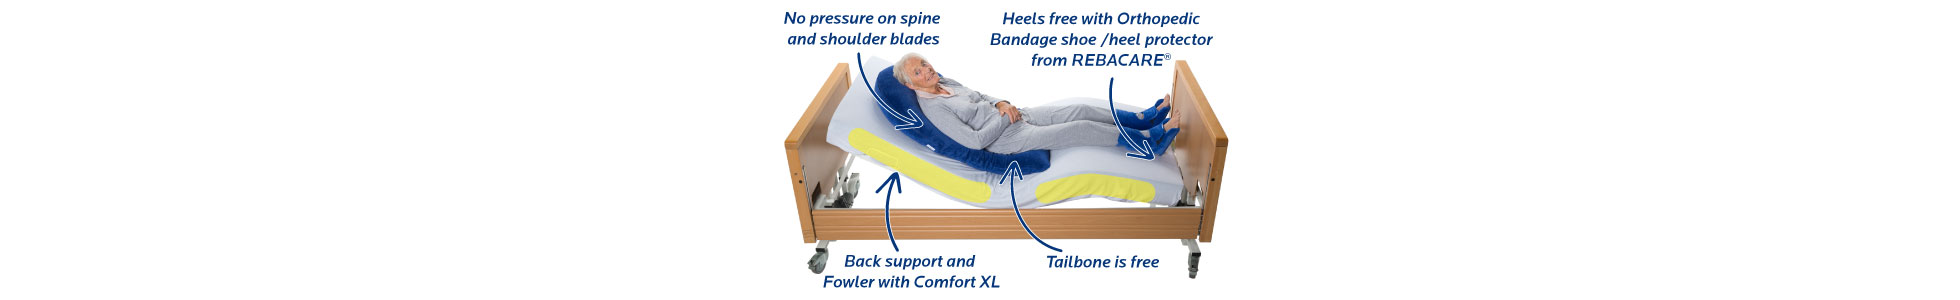 REBACARE® Supine position instructions